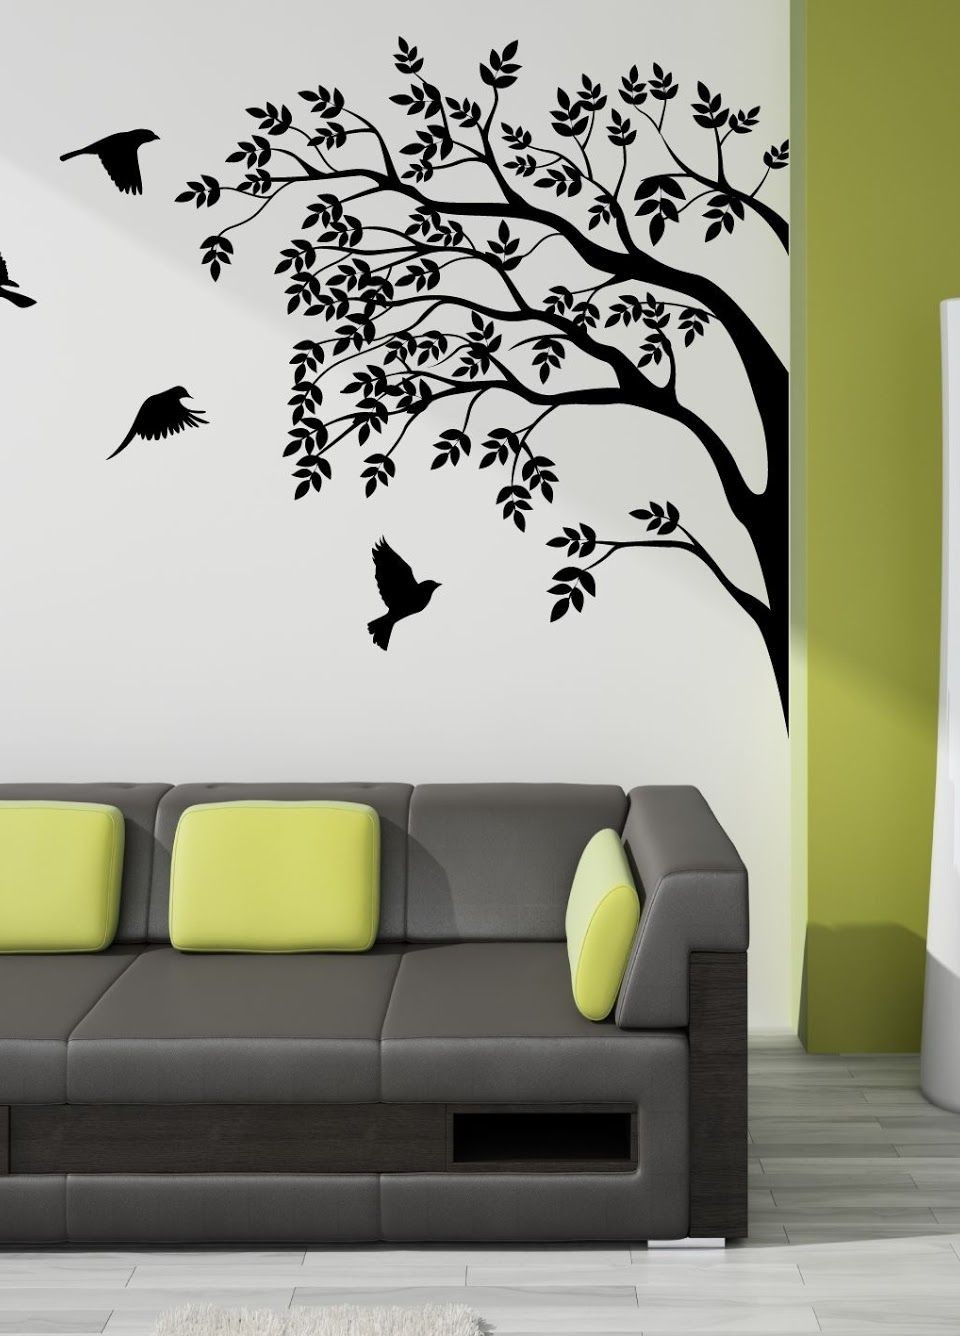 Decoration For Your Home Interior With Stunning Tree Images Wall Art - How do you put up wall art stickers